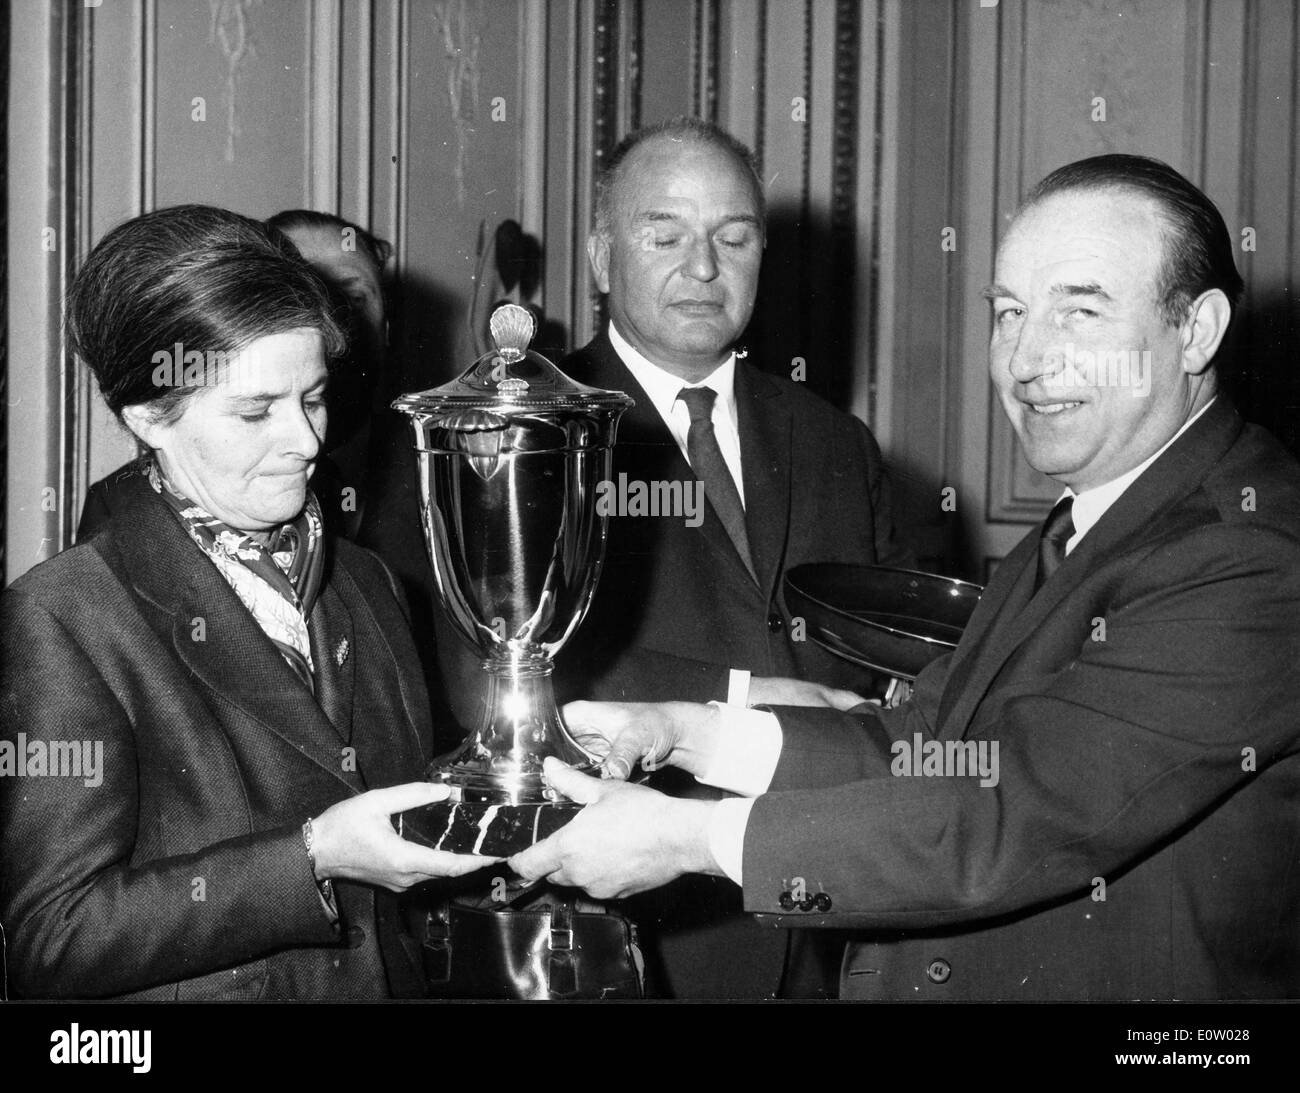 Raymond Marcellin receiving and award - Stock Image